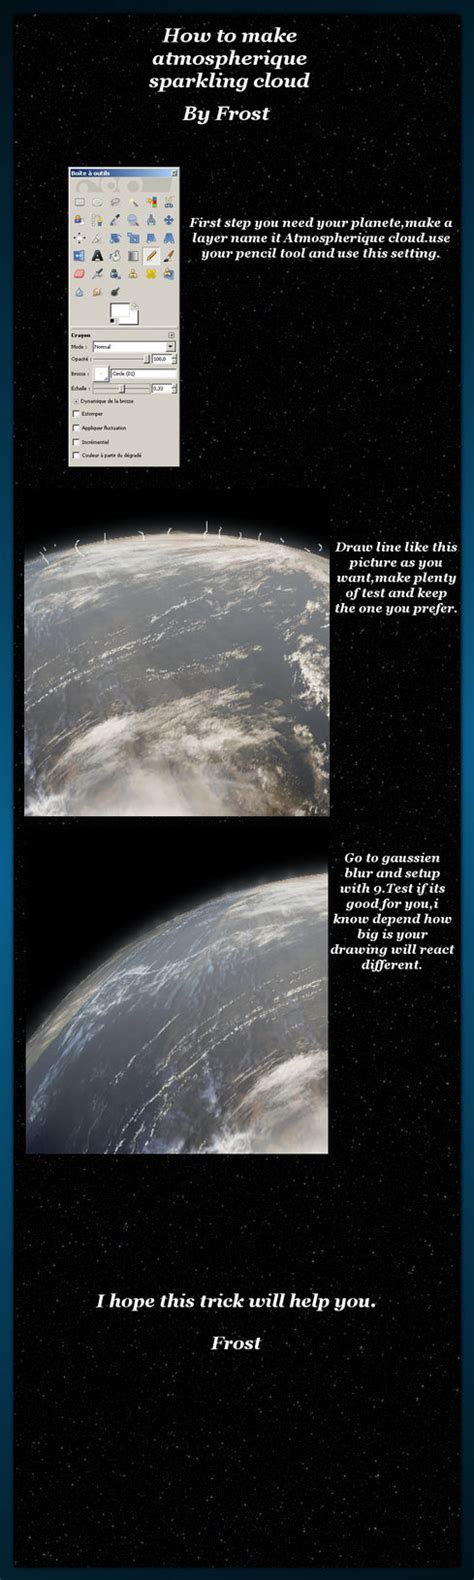 underwater tutorial gimp by frostbo on deviantart tutorial gimp planete trick by frostbo on deviantart